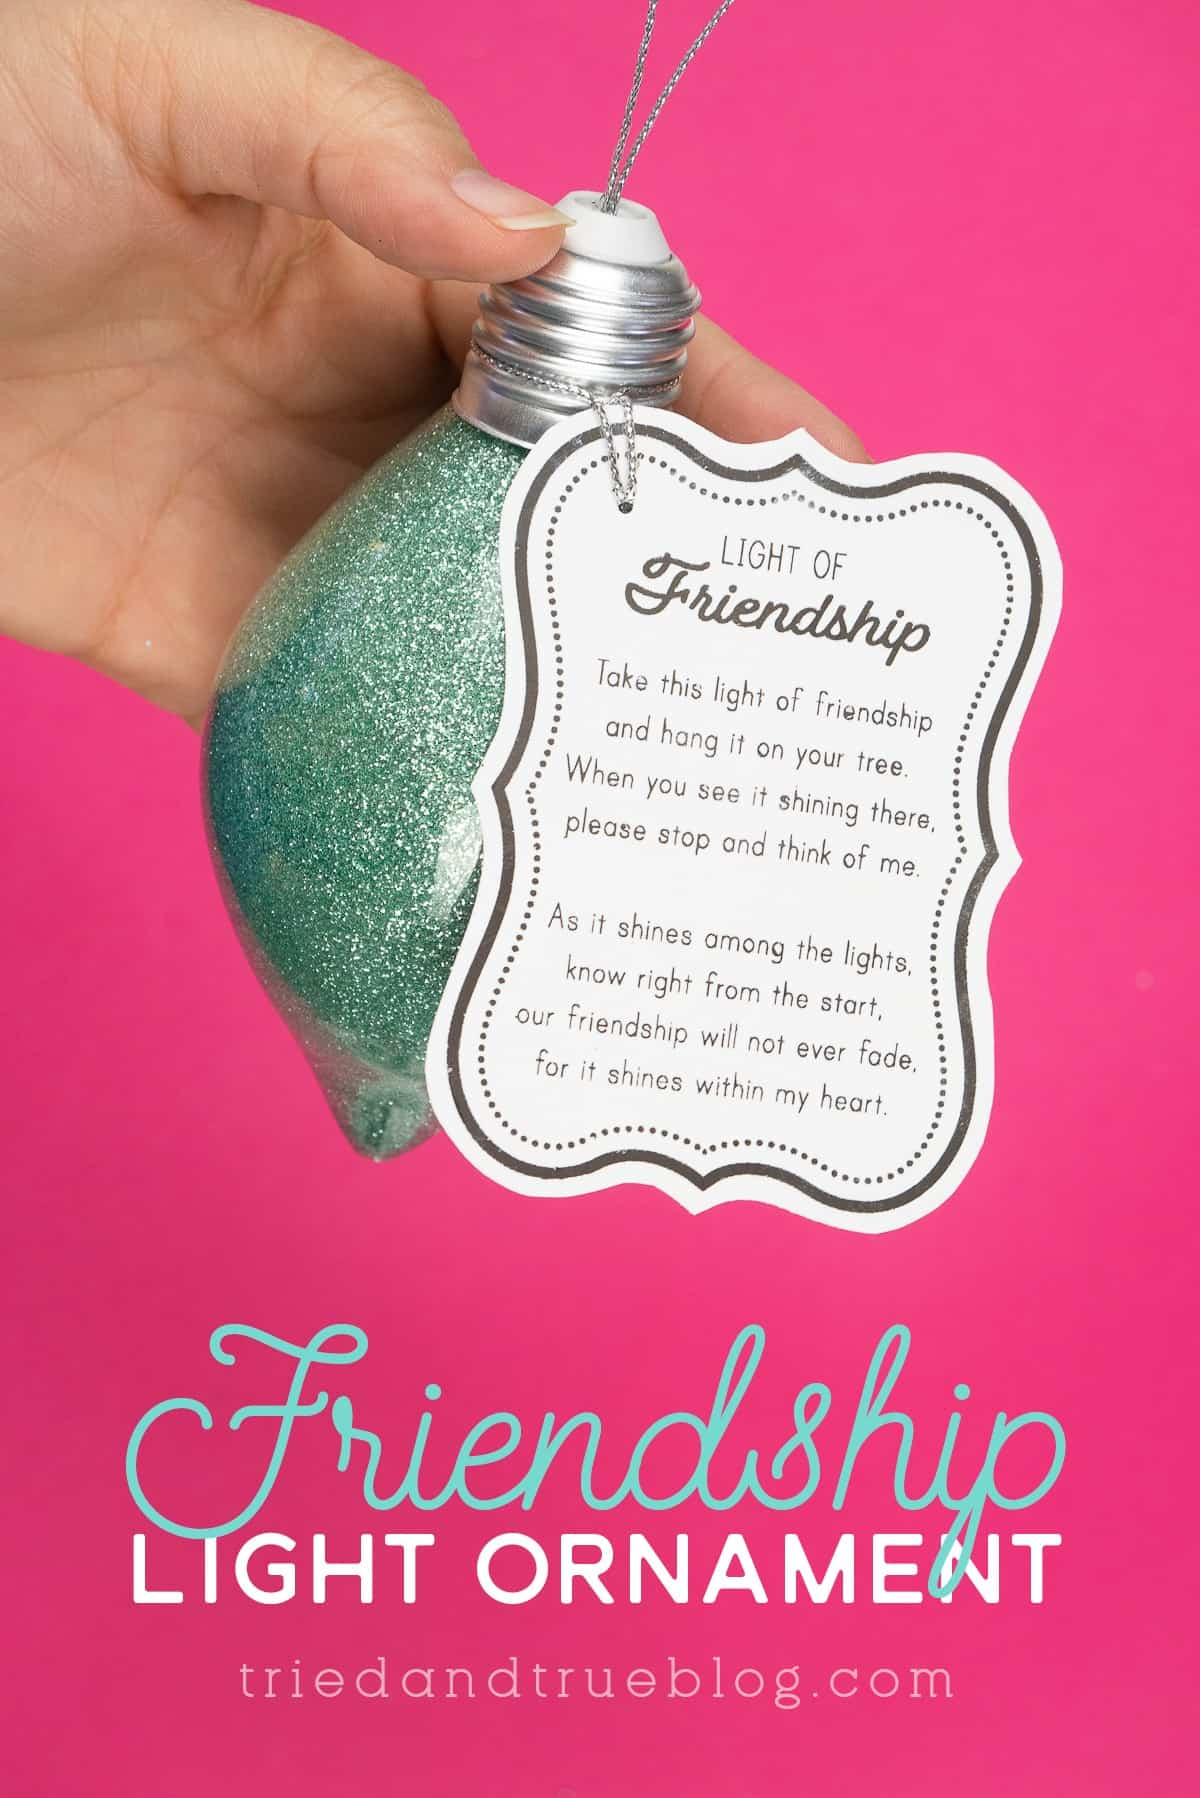 Hand holding a glittered ornament with Light of Friendship Tag on pink background.